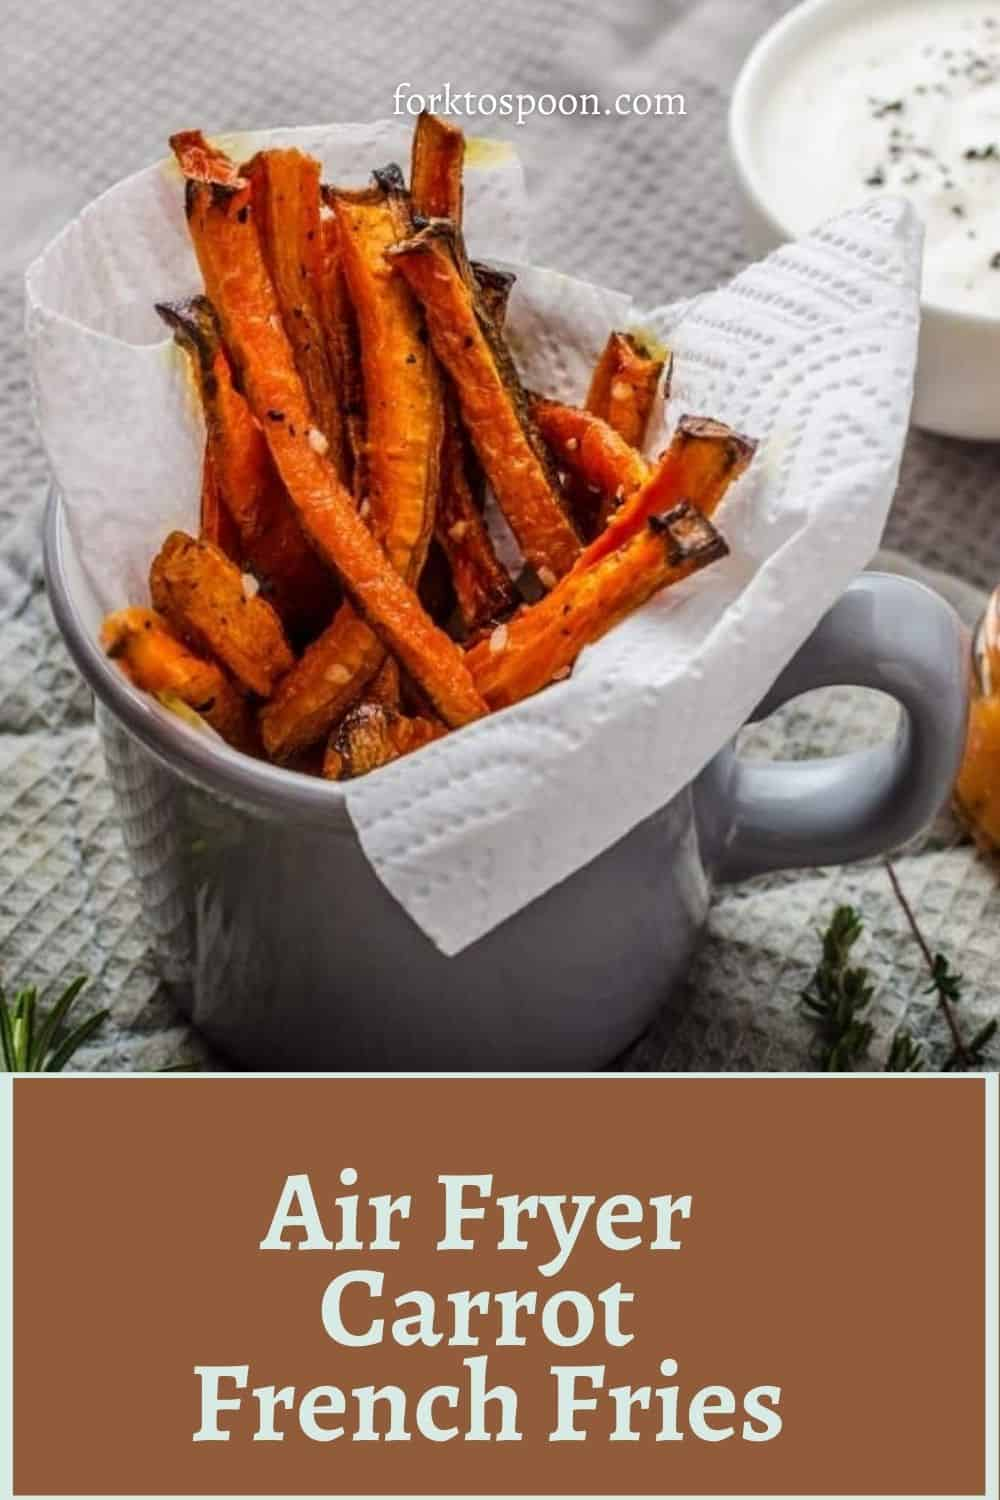 Air Fryer French Fries Carrots